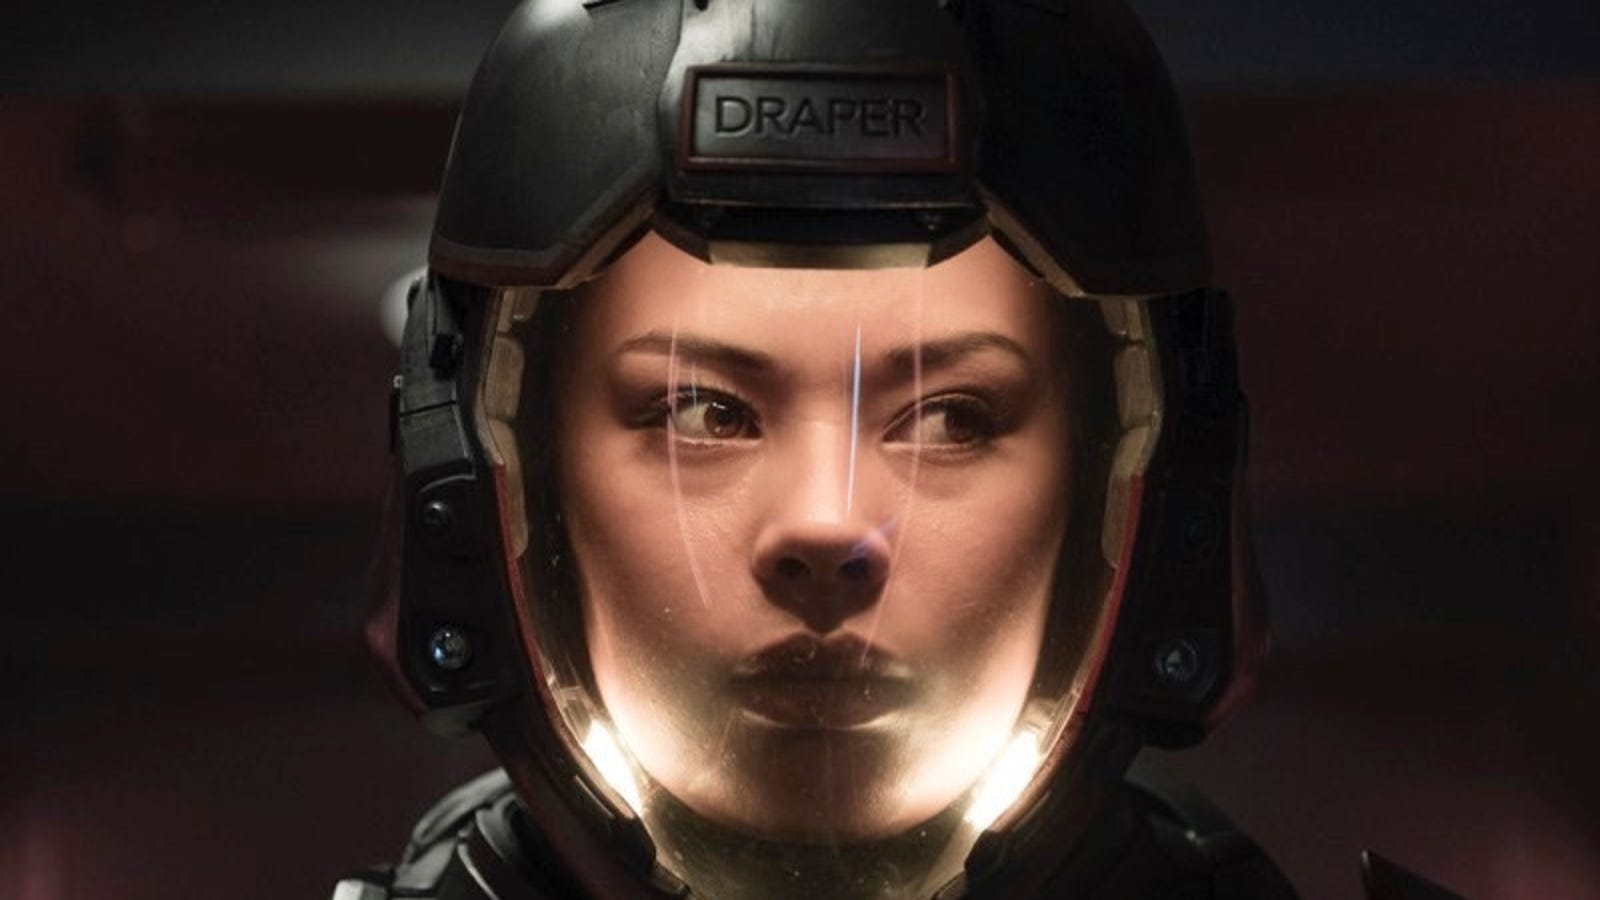 If You Aren't Watching The Expanse, the Best Scifi Show on TV, Here's What You Need to Know to Start Tonight